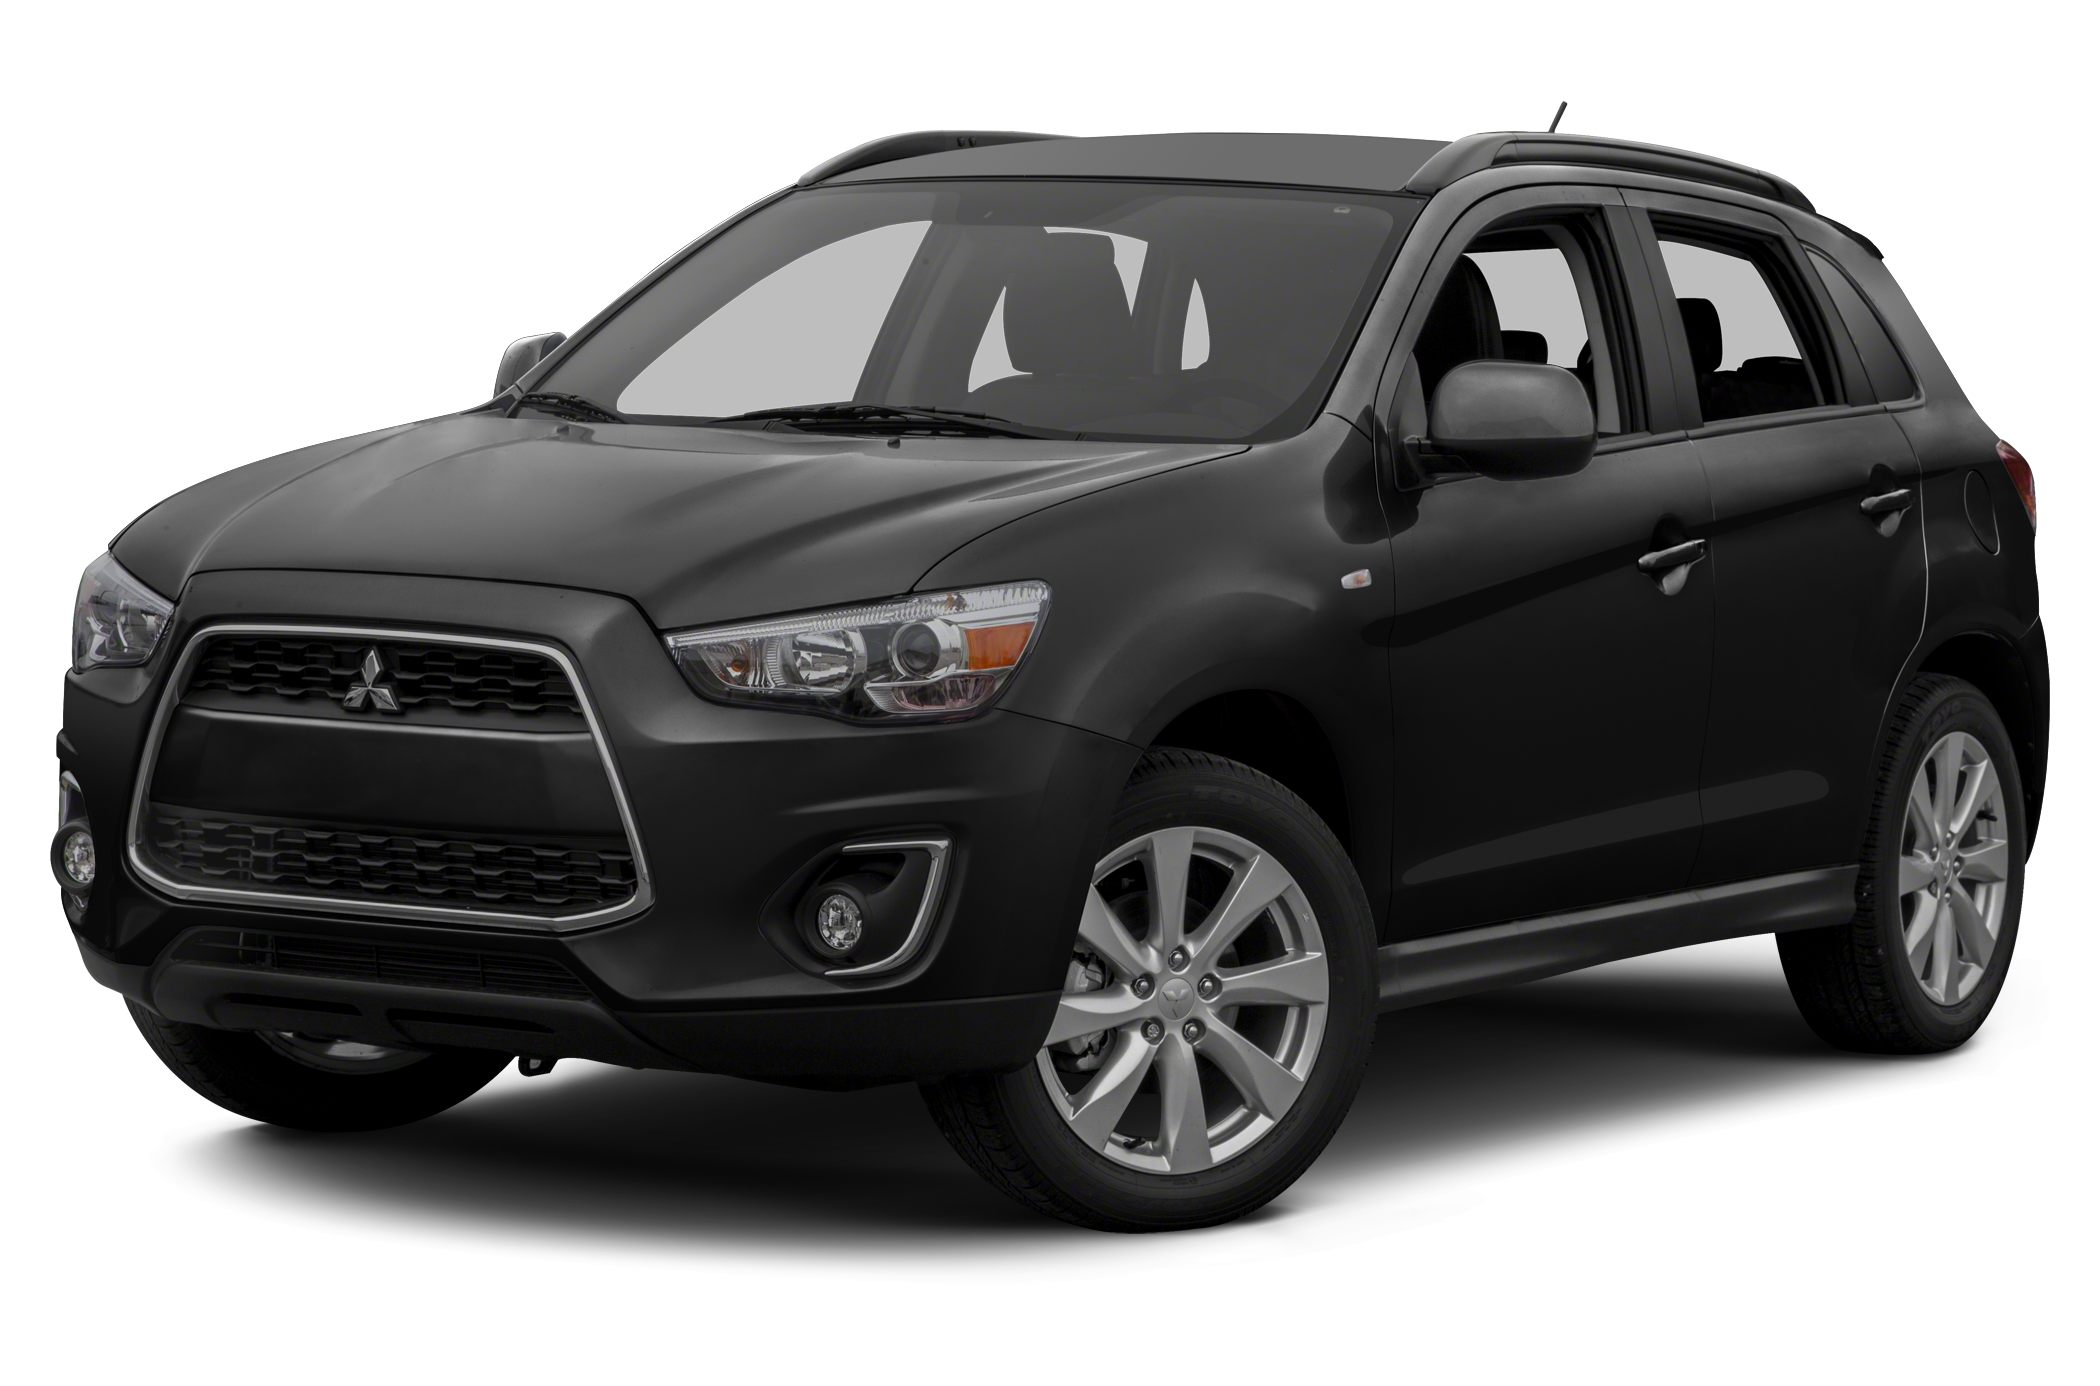 2013 Mitsubishi Outlander Sport ES SUV for sale in Billerica for $11,995 with 19,627 miles.